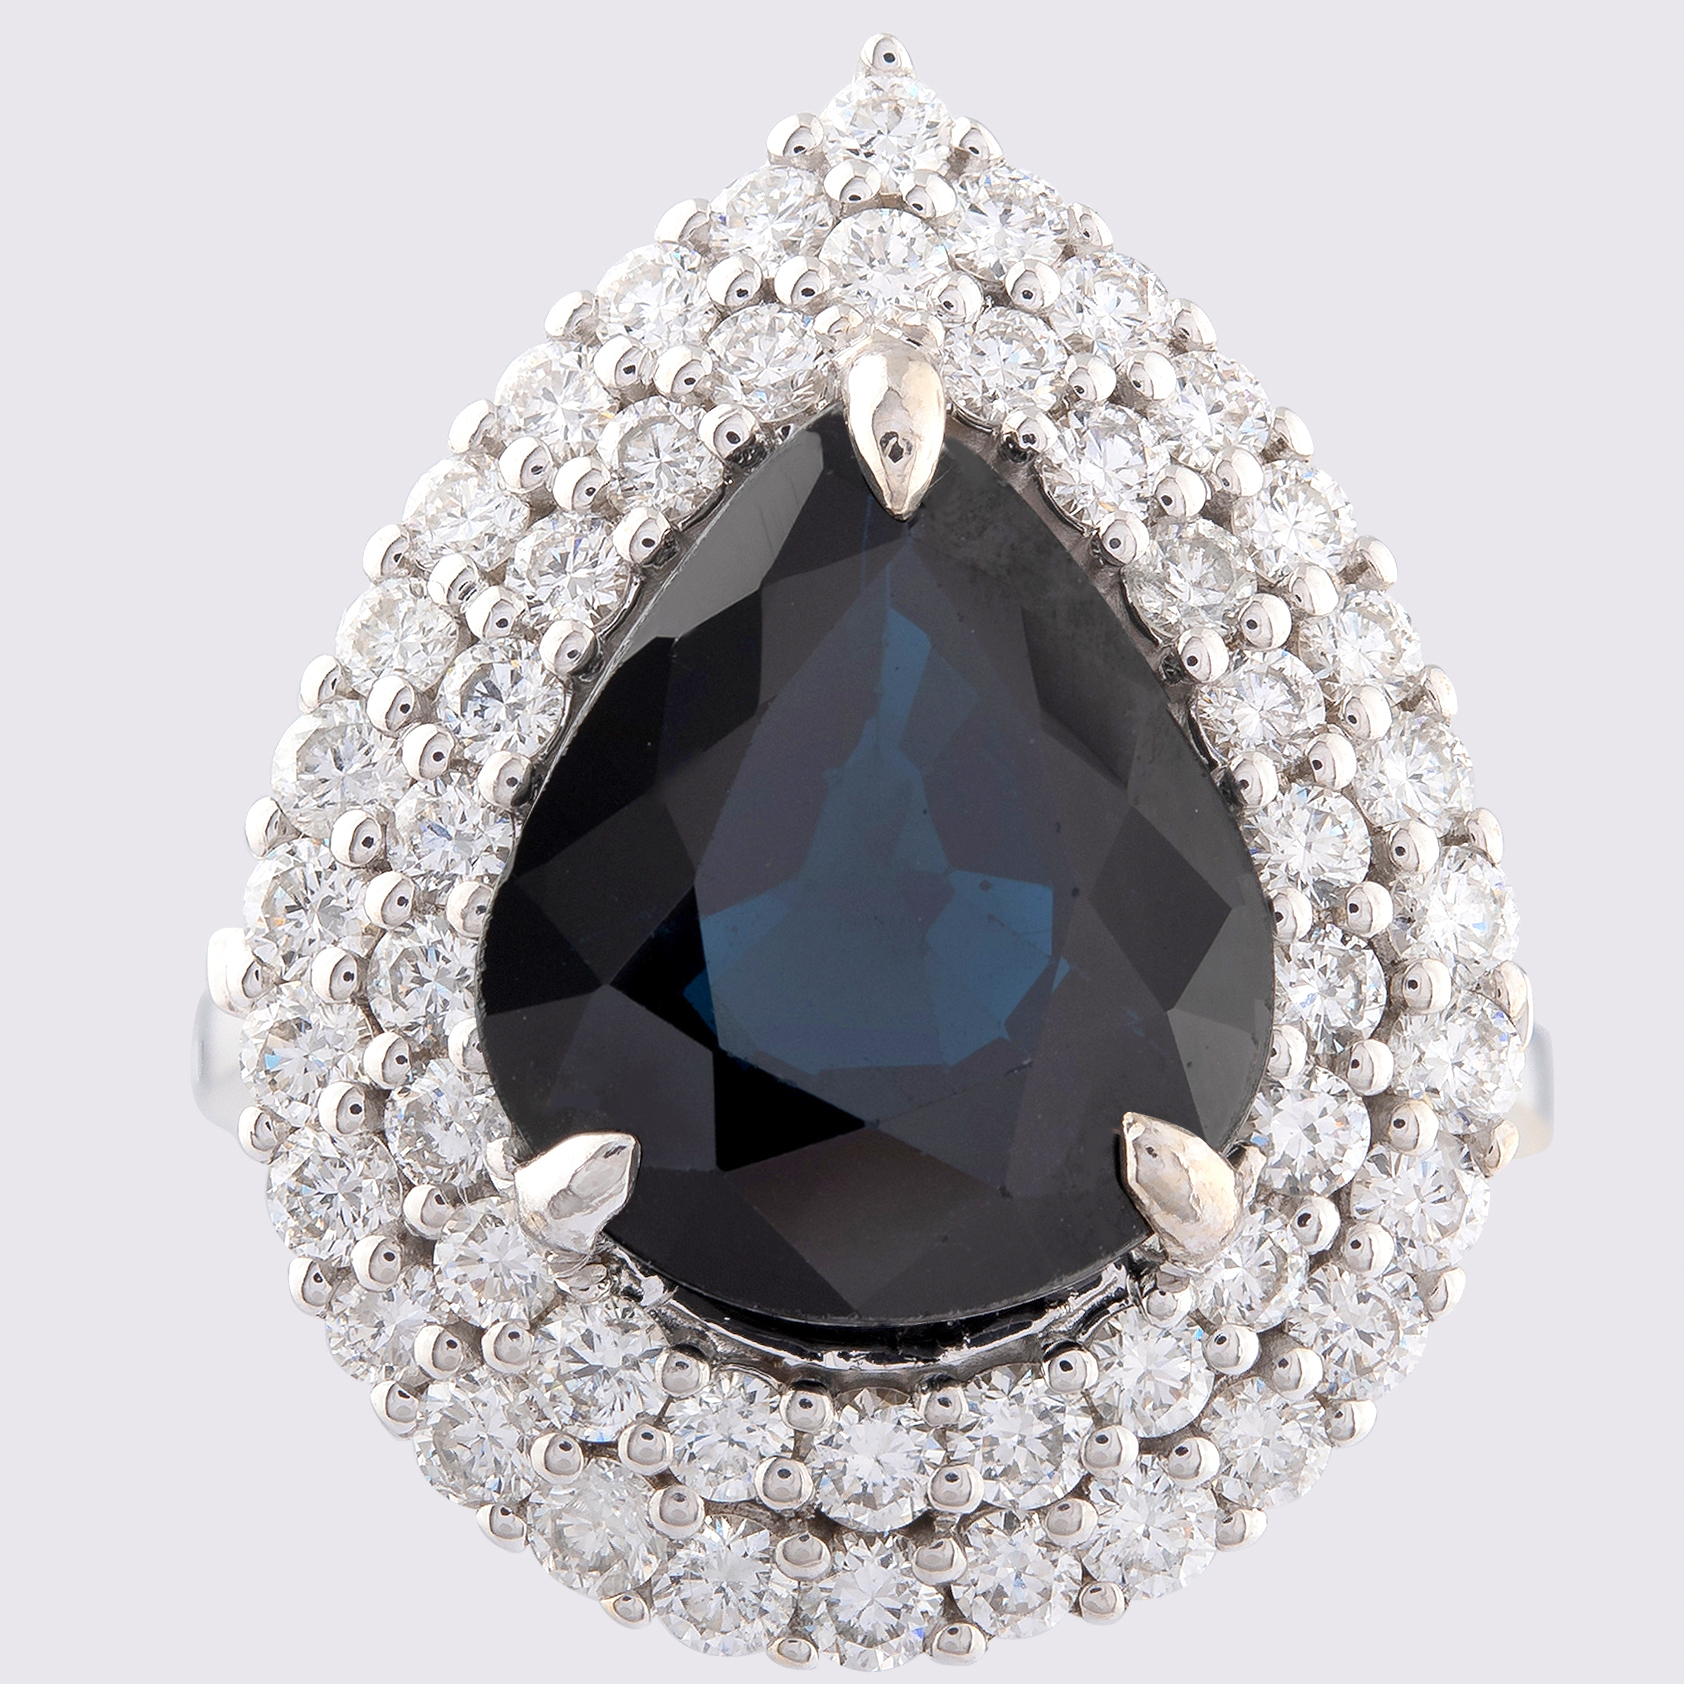 14K White Gold Cluster Ring 5,75 Ct. Natural Sapphire - 1,40 Ct. Diamond - Image 3 of 4